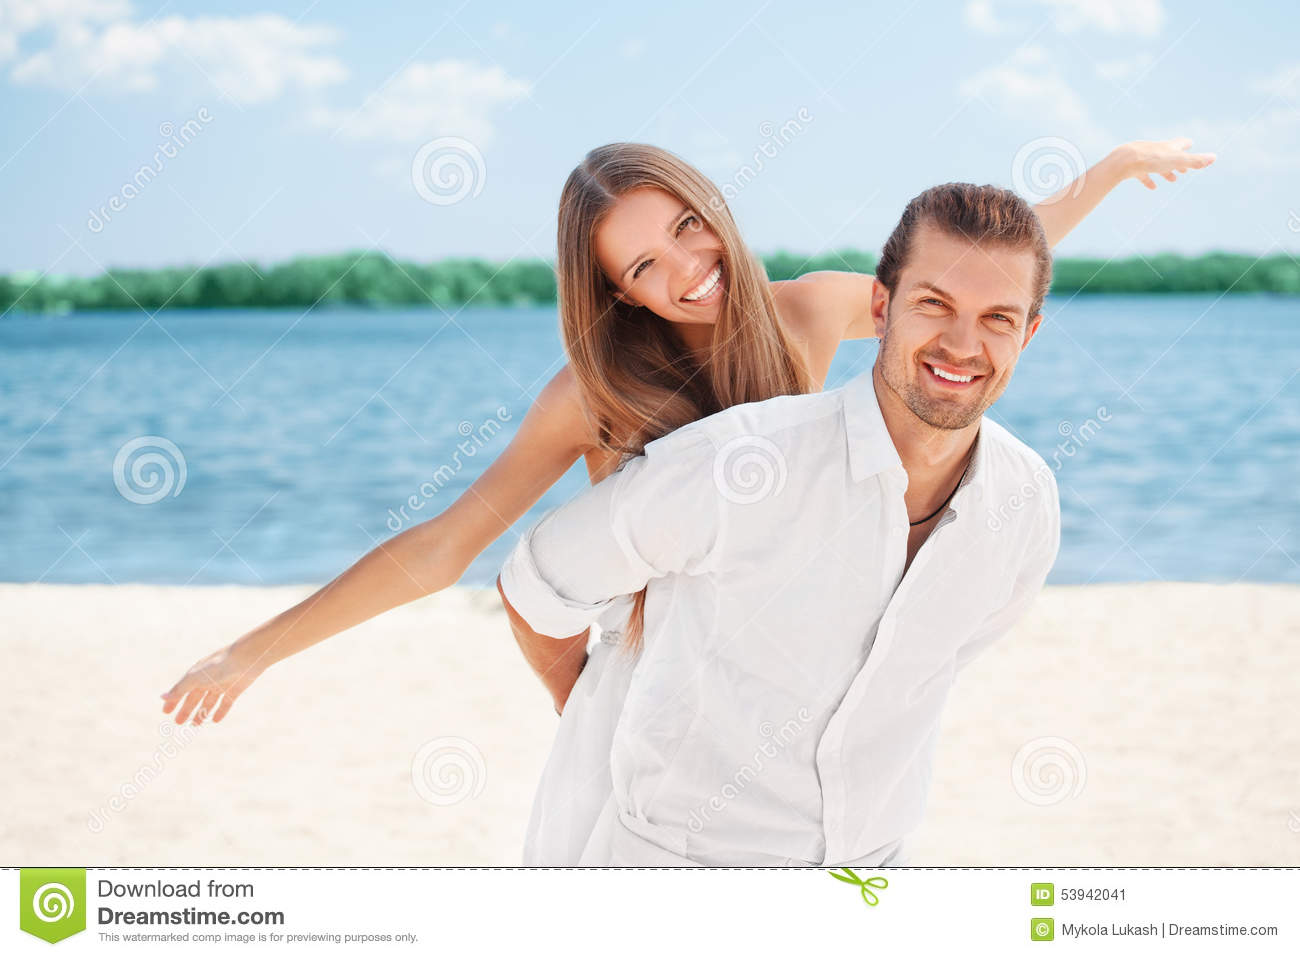 Happy young joyful couple having beach fun piggybacking laughing together during summer holidays vacation on the beach. Beautiful